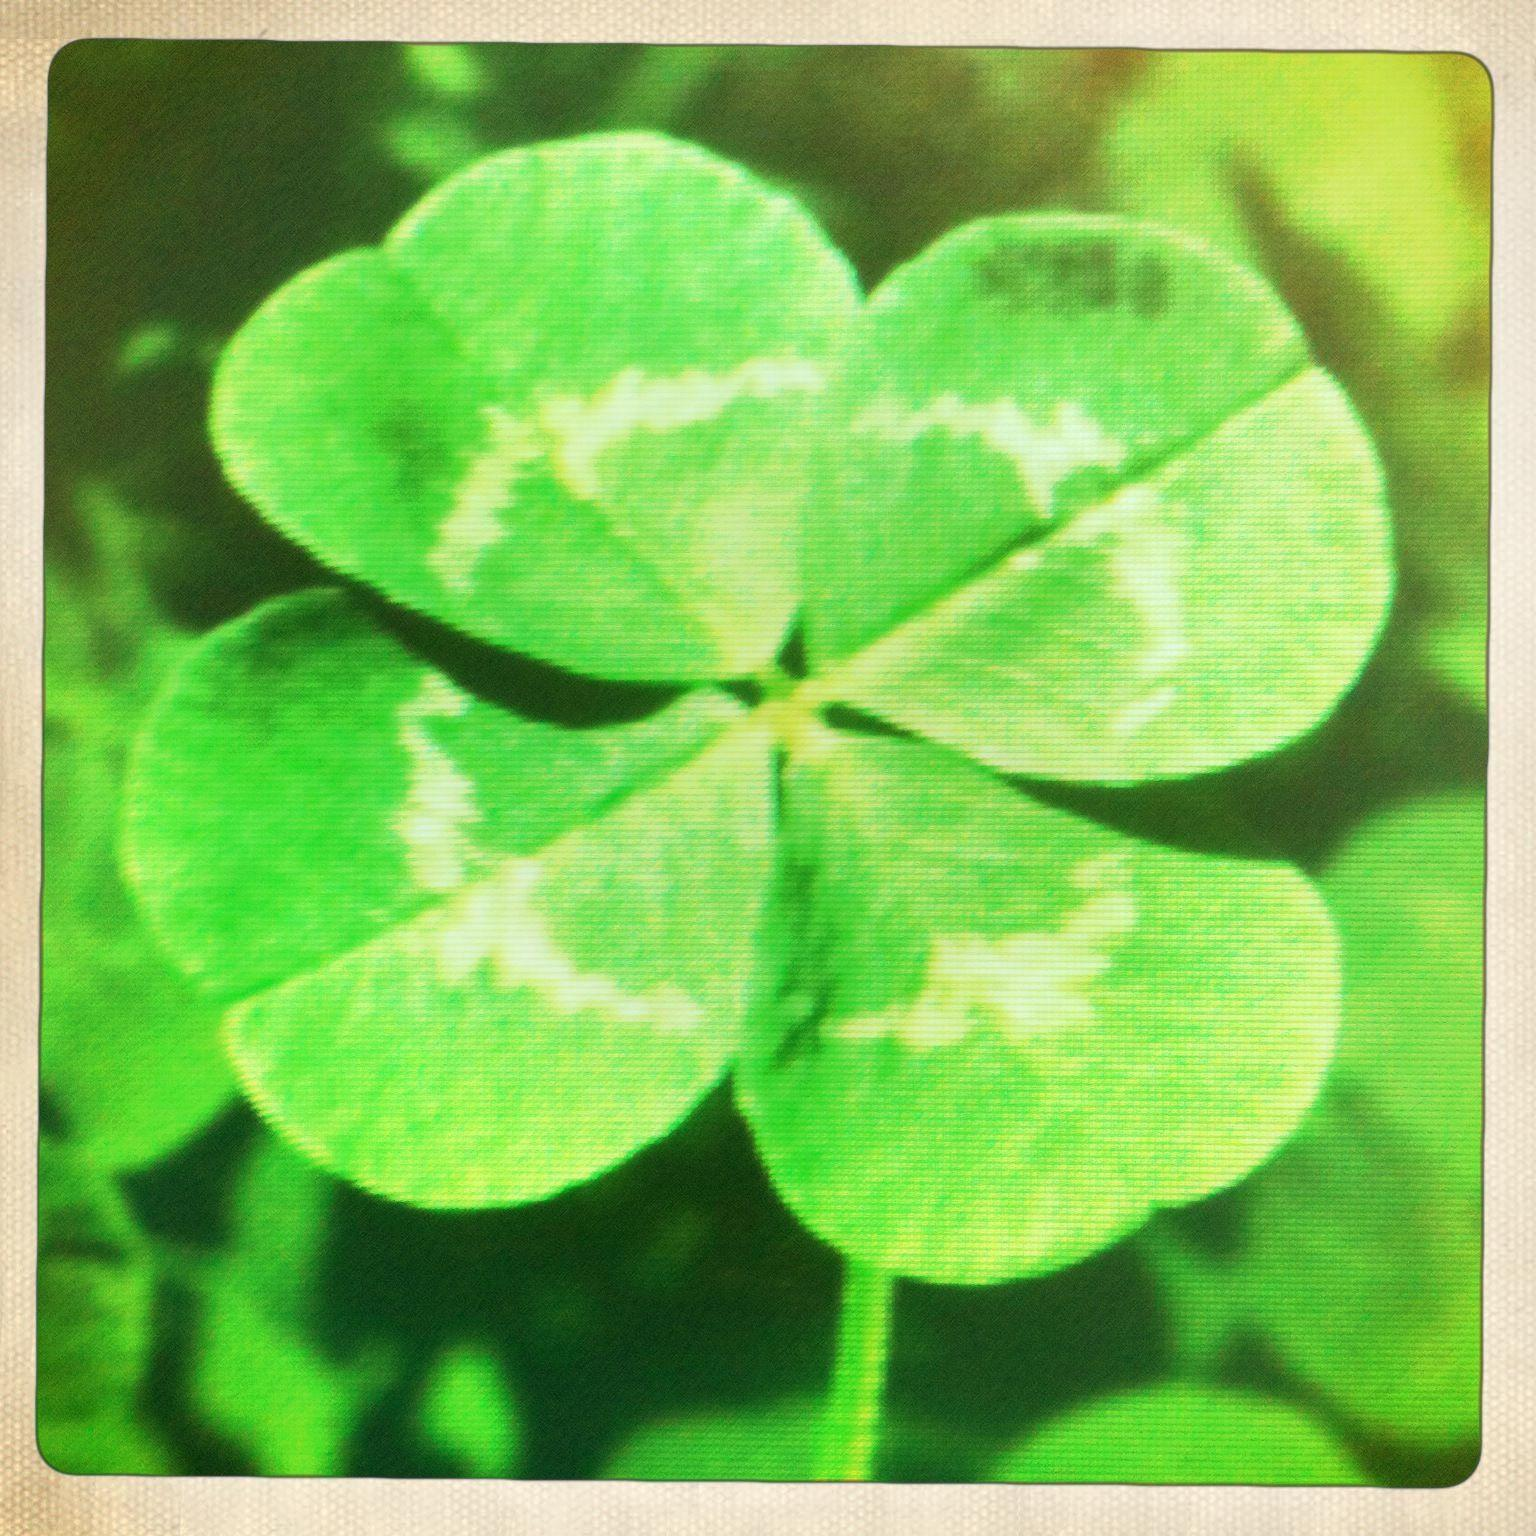 Four Leaf Clover Wallpapers 1536x1536